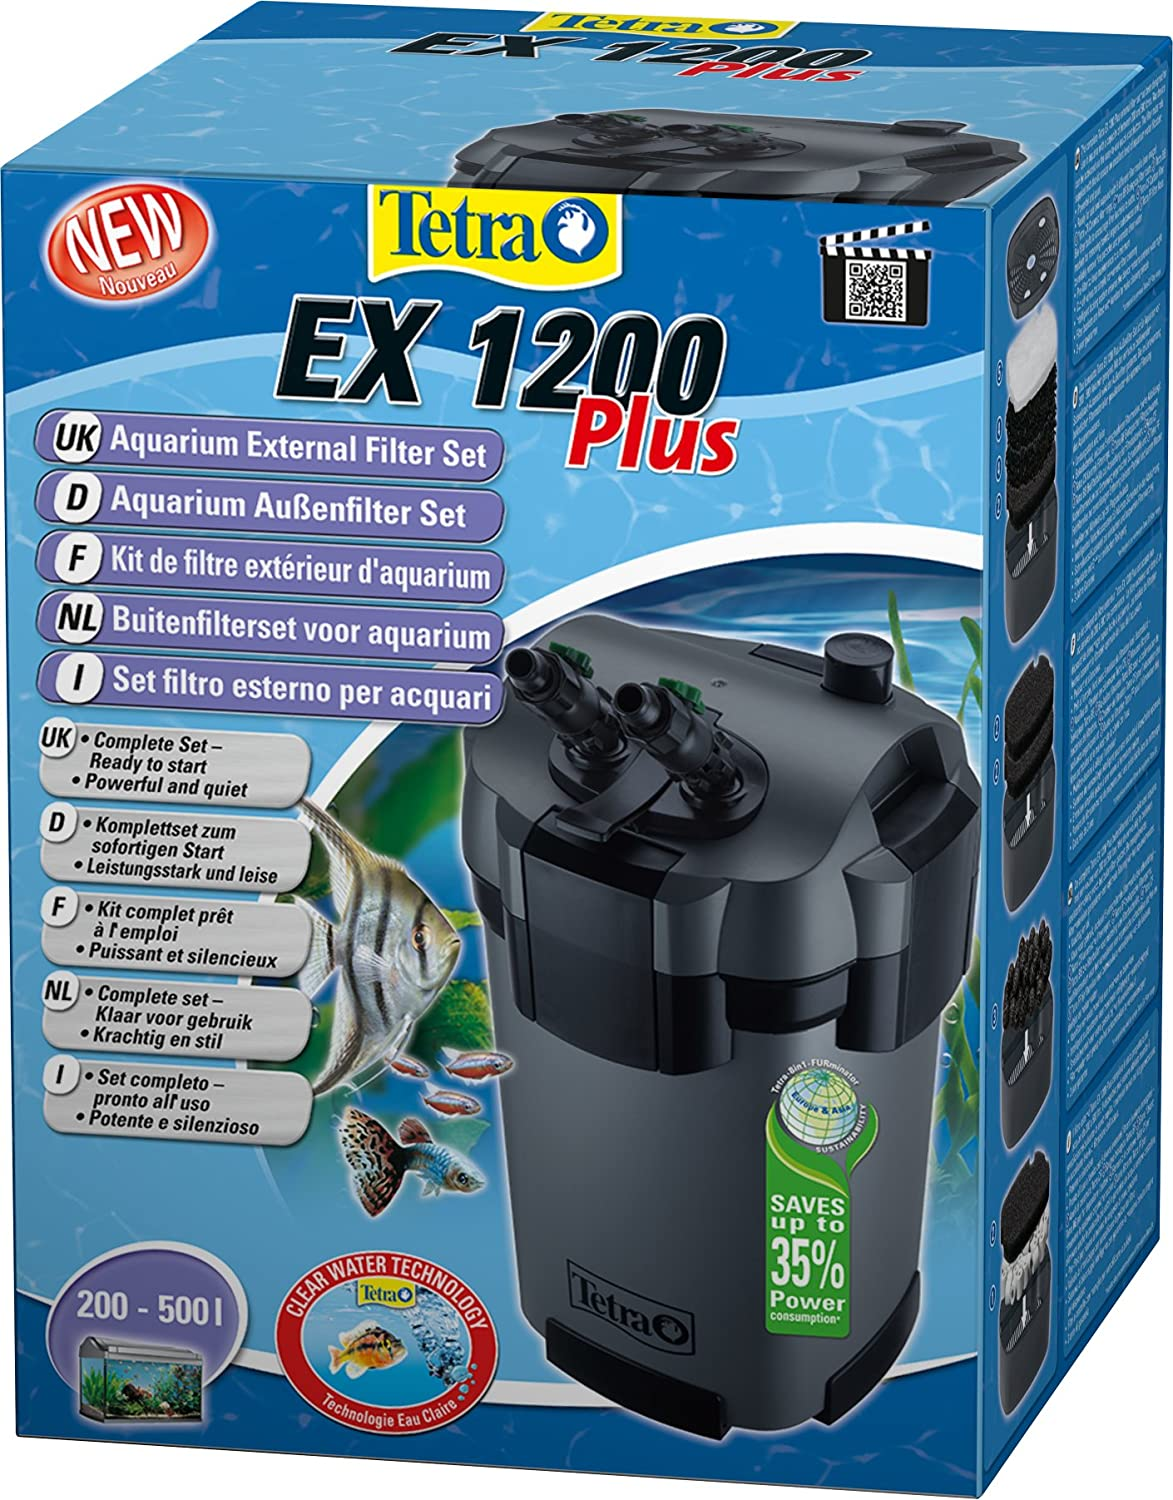 81 hGpfR69L._SL1500_ tetra tec ex 700 external filter amazon co uk pet supplies  at honlapkeszites.co